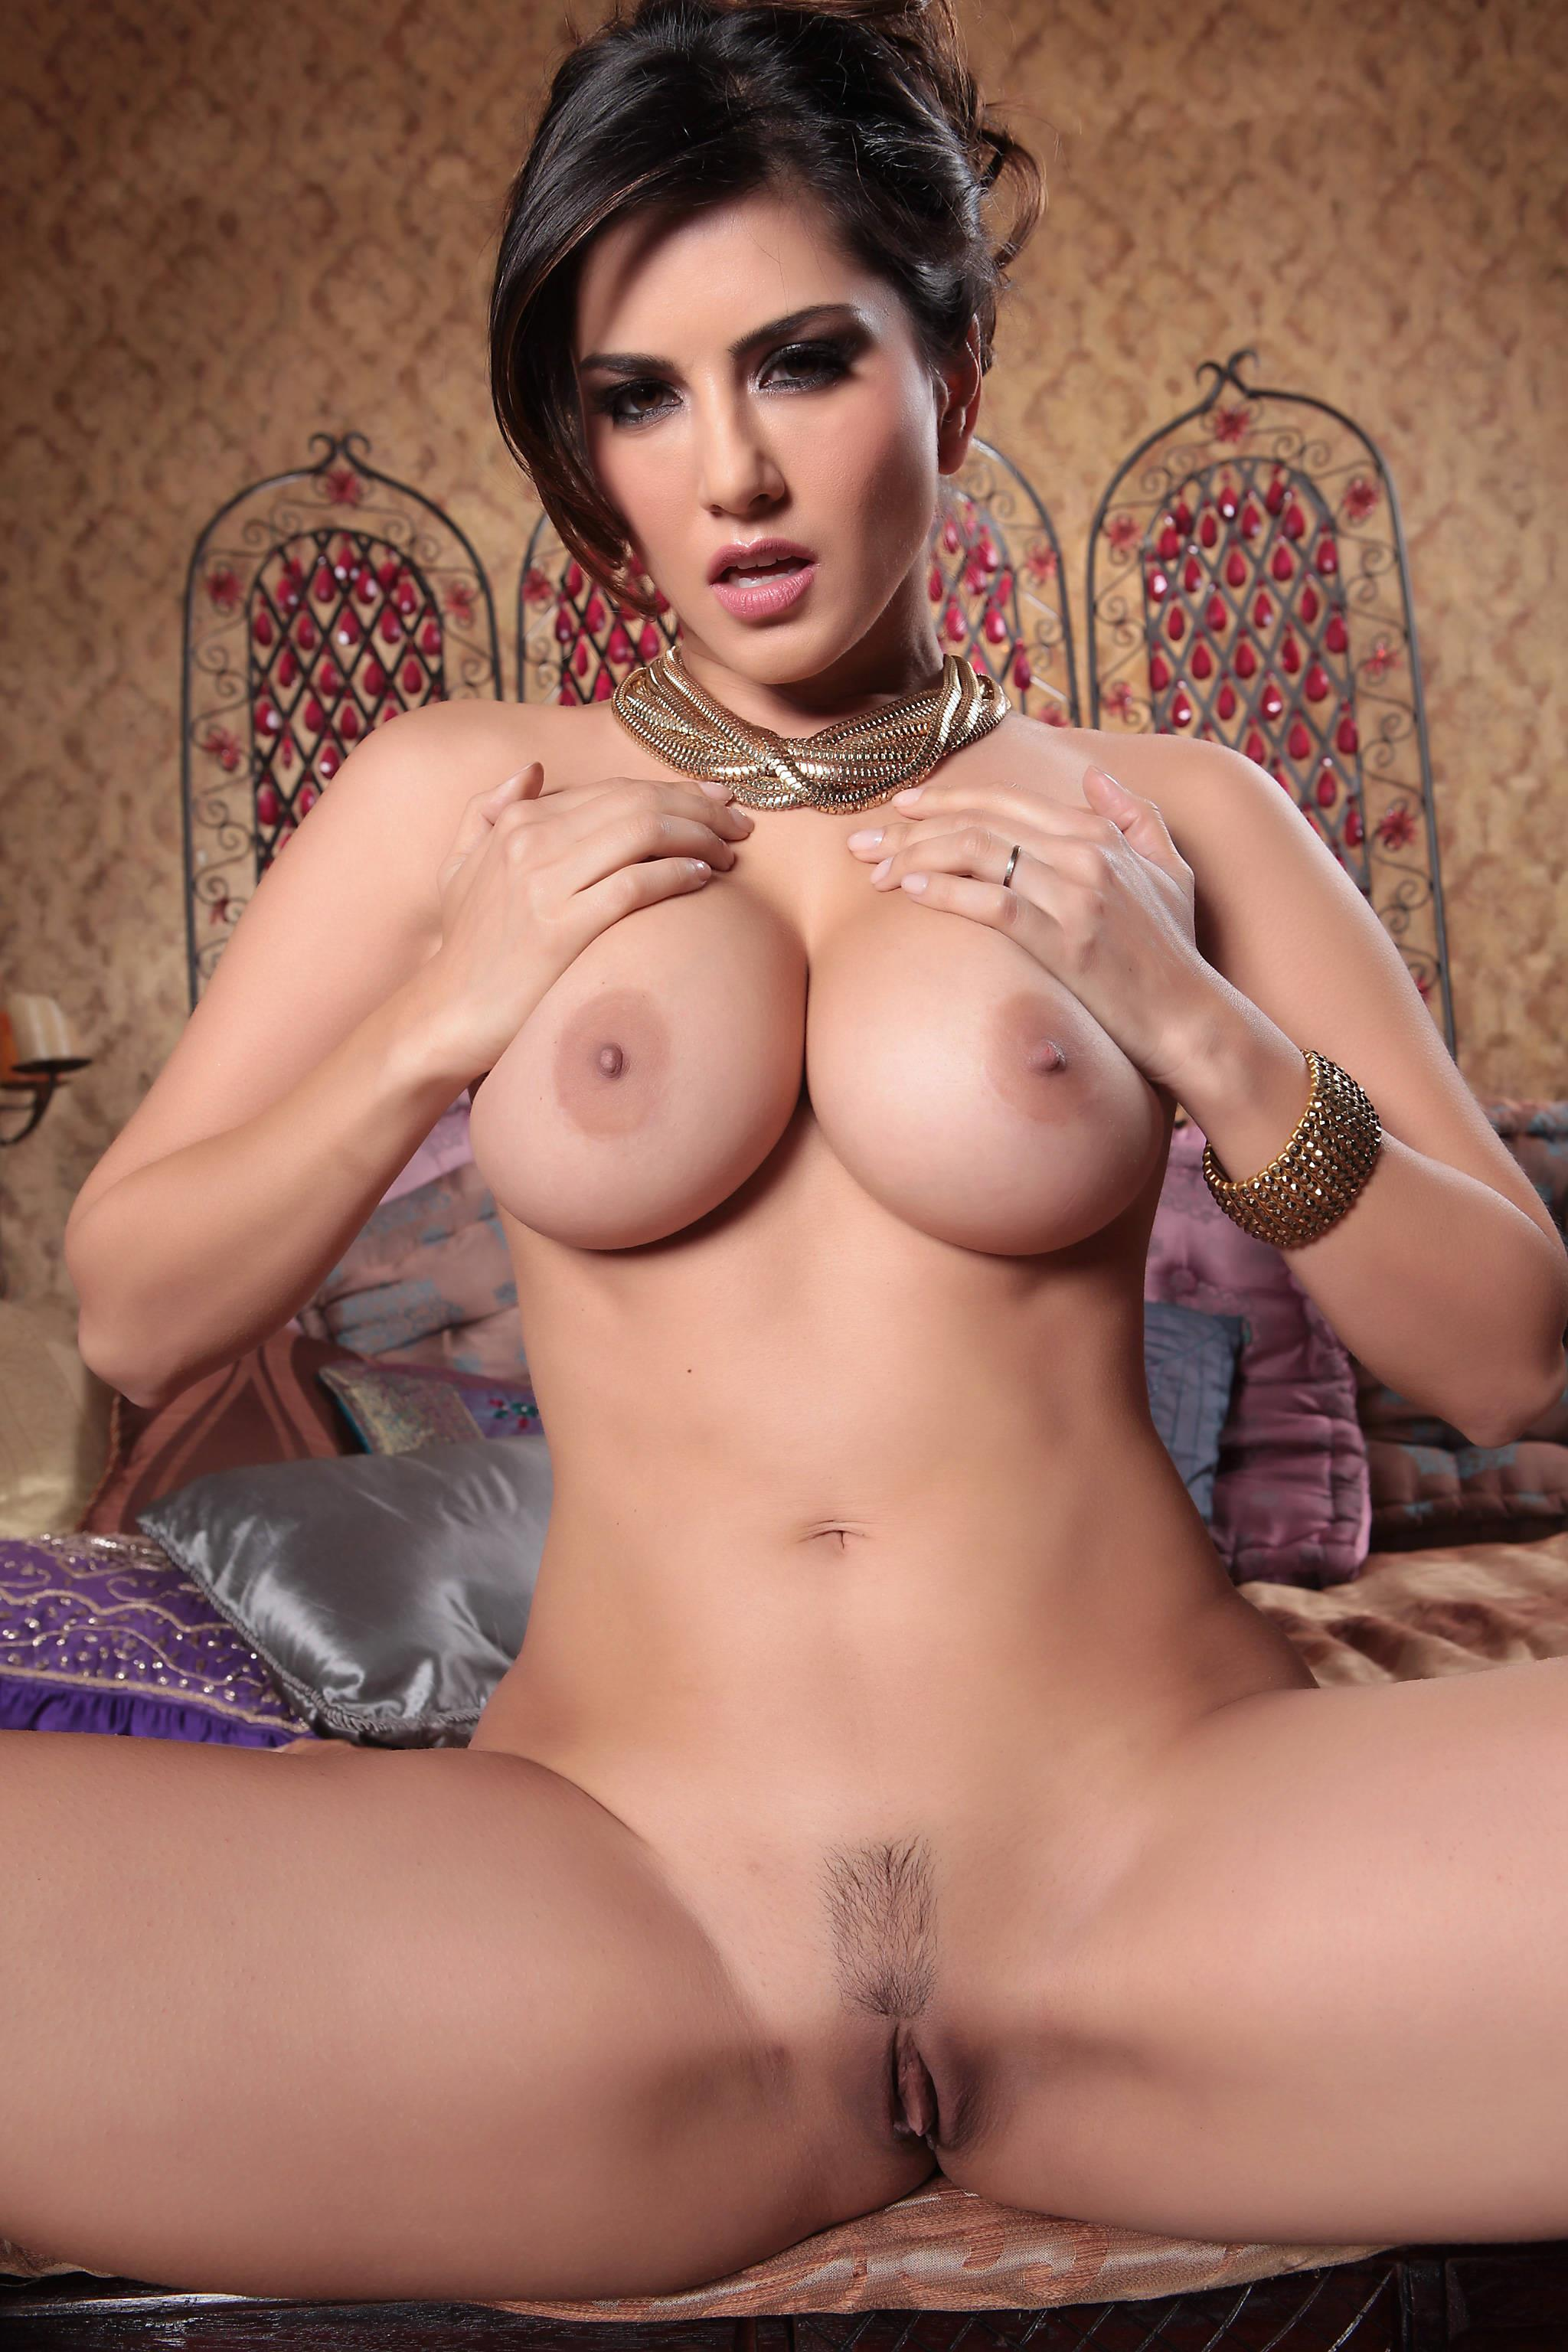 Sunny leone xxx video hd com-6800